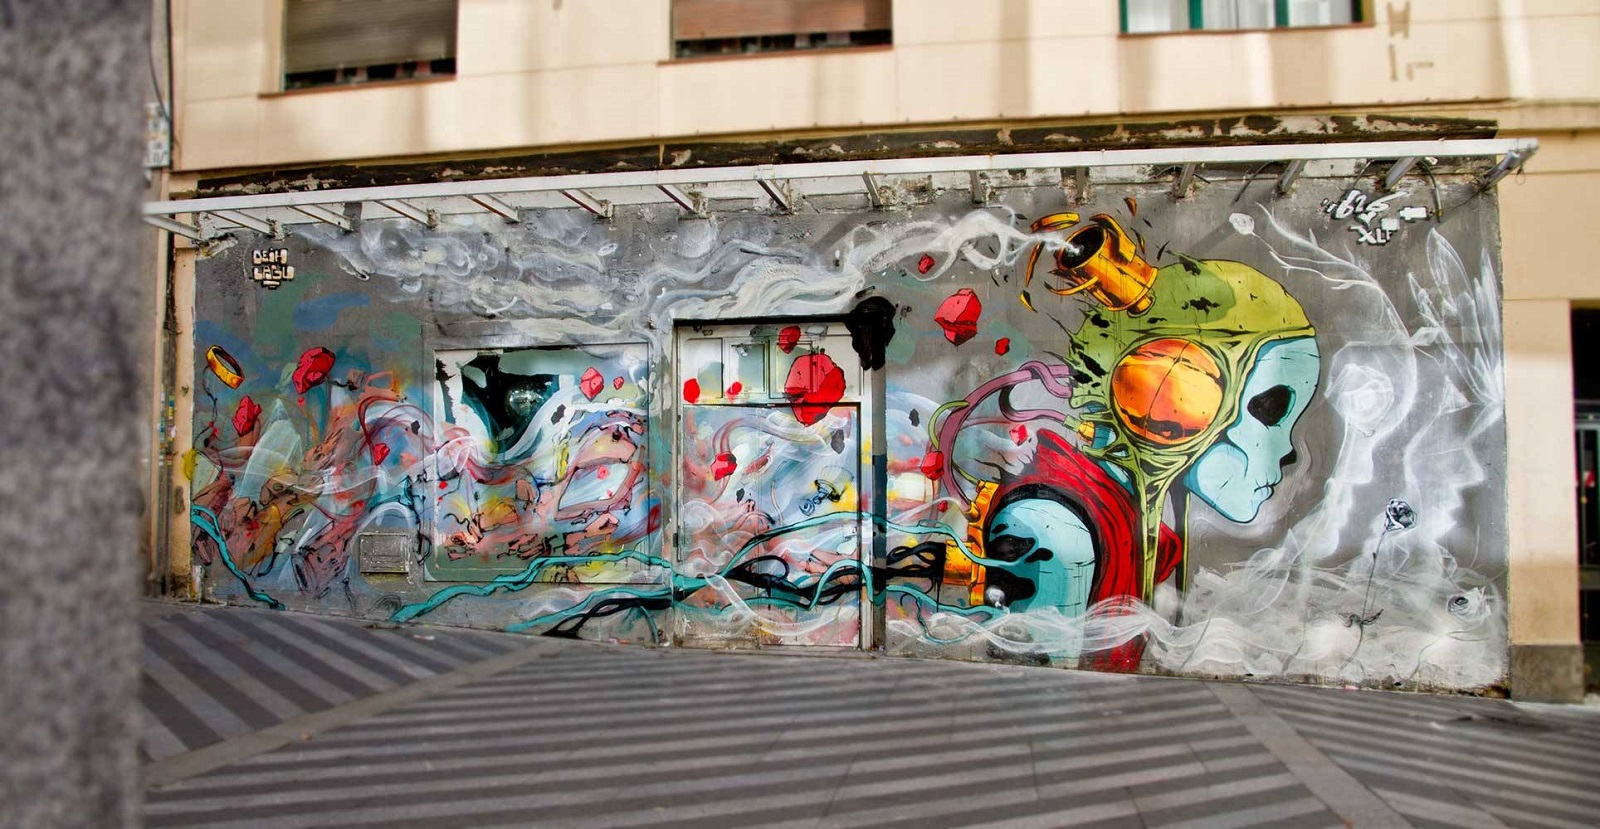 deih-laguna-new-mural-in-madrid-08